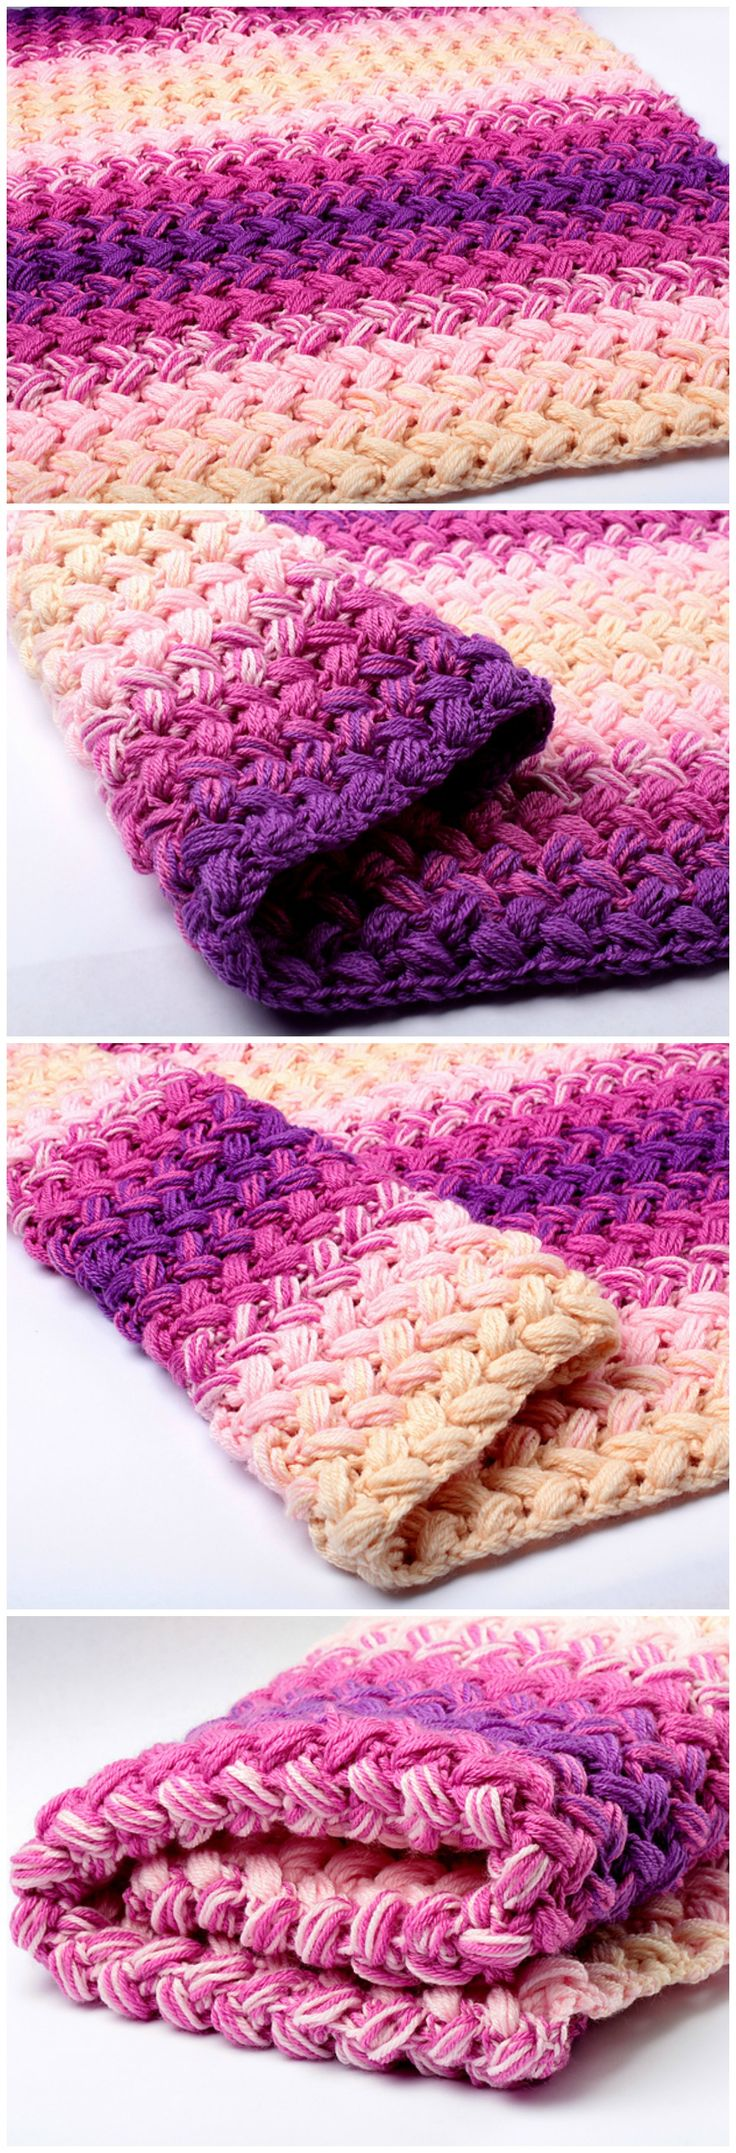 Crochet Zig Zag Blanket I love the progression of colour. Mixing the colours together, clever idea!